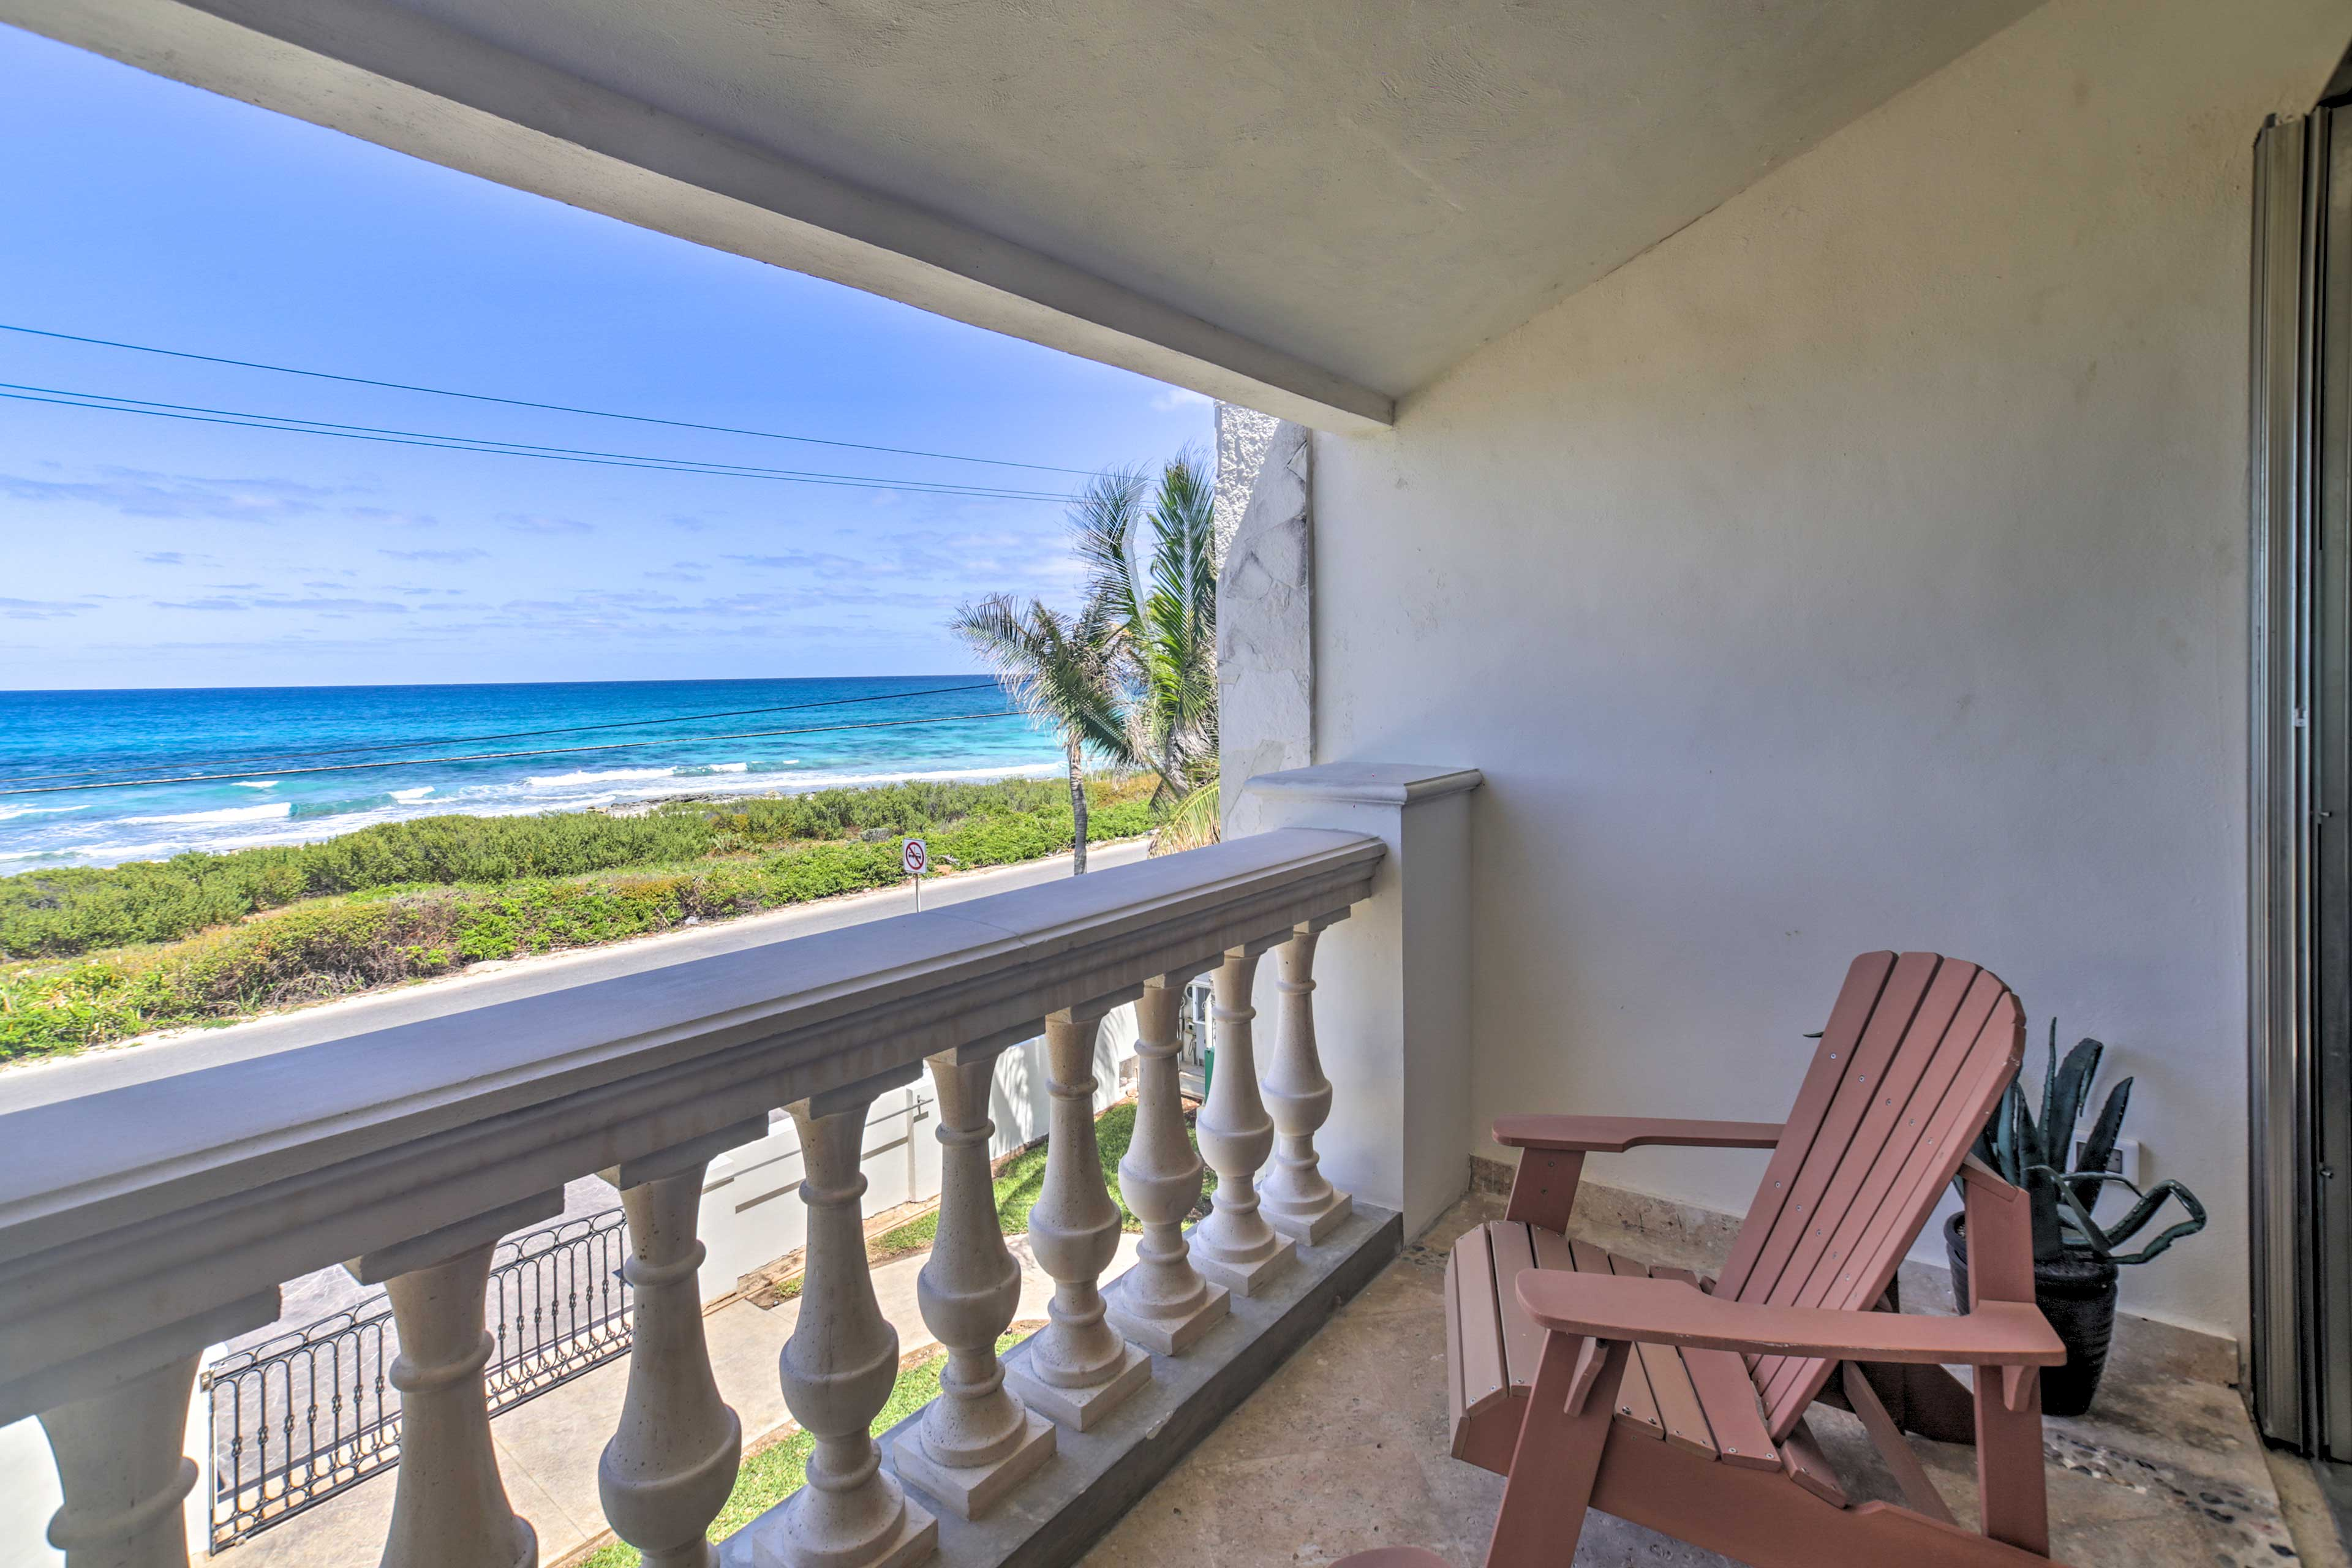 Read your favorite book on the balcony while listening to the ocean.